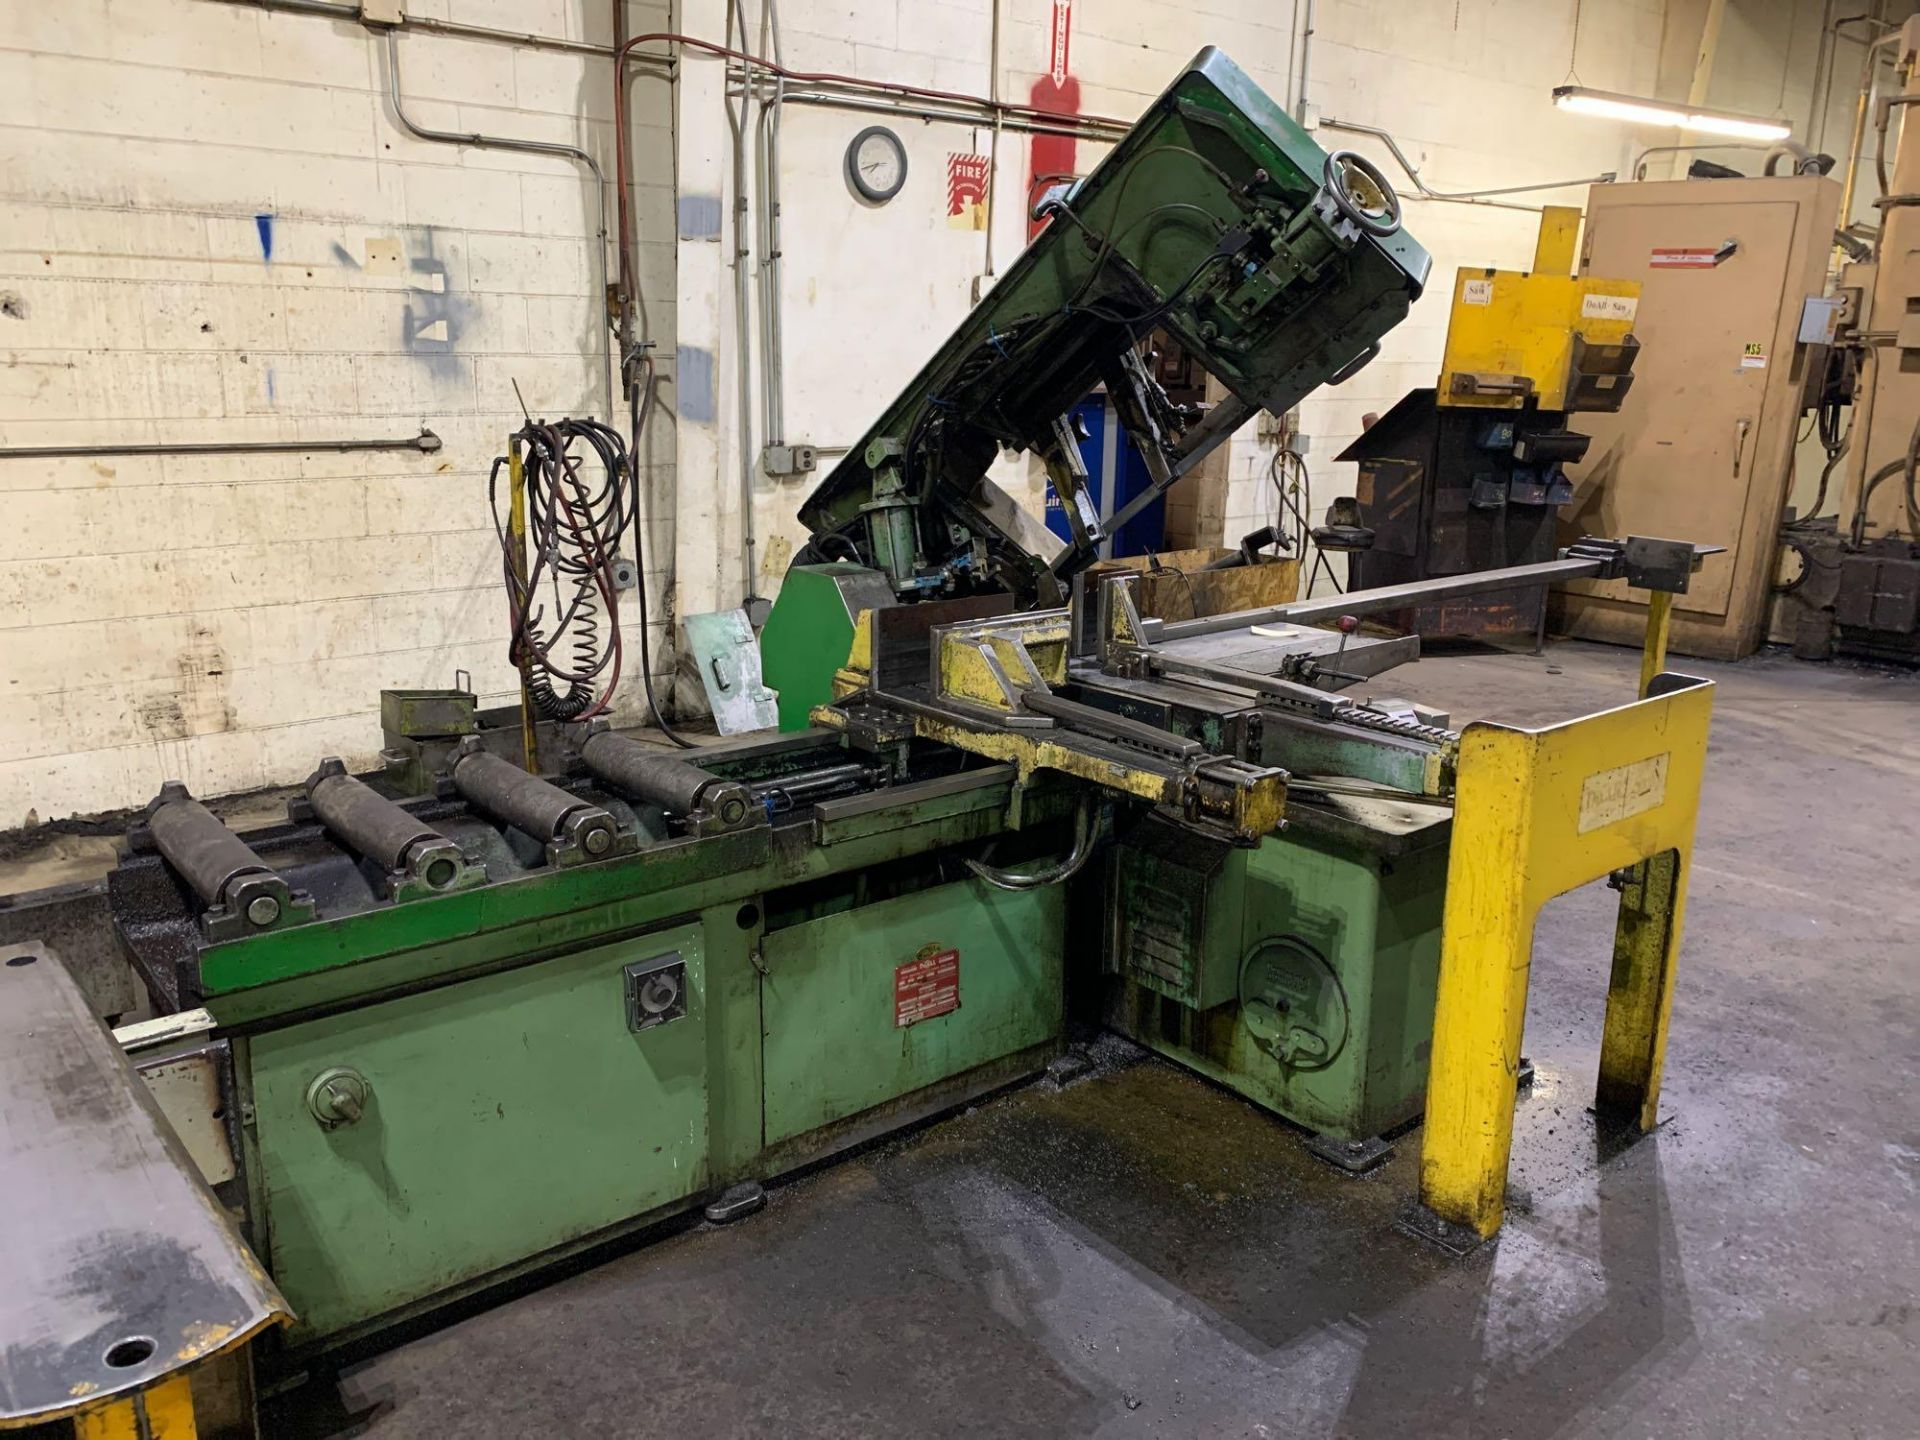 DoAllSemi-Automatic Horizontal Band Saw Model: C-1213a s/n: 412-84212 made in the usa capacity: rec - Image 5 of 16